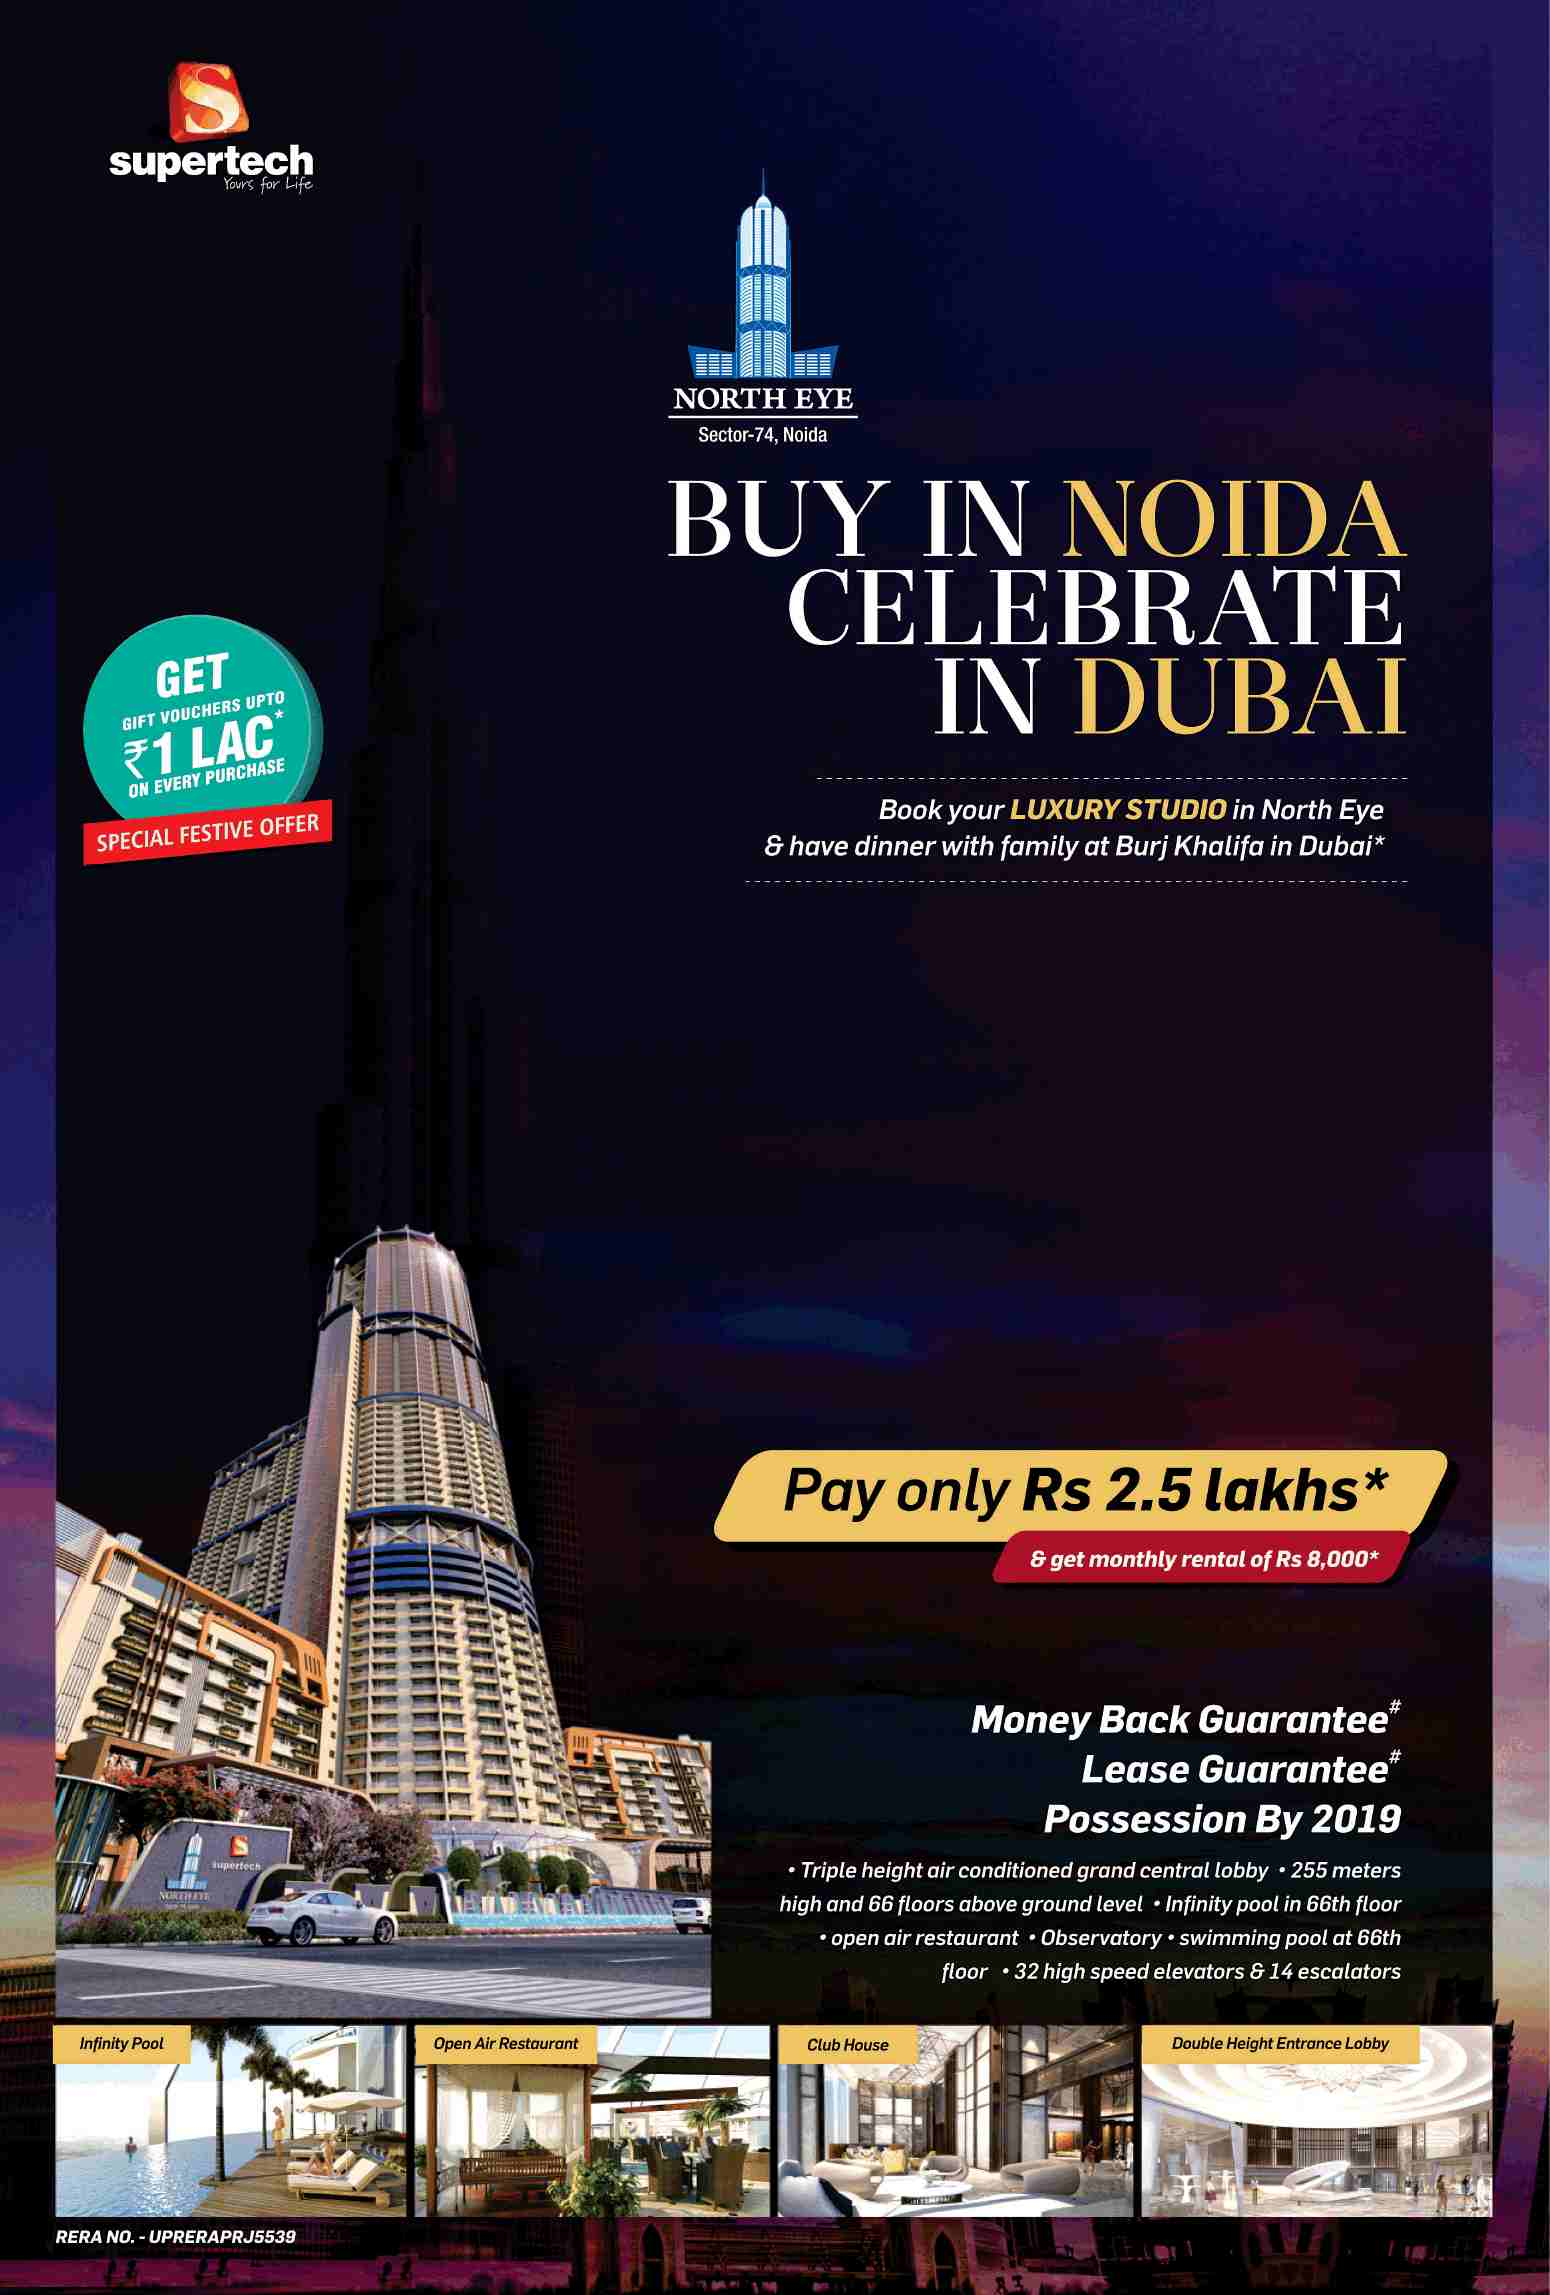 Dine With Your Family At Burj Khalifa In Dubai By Booking